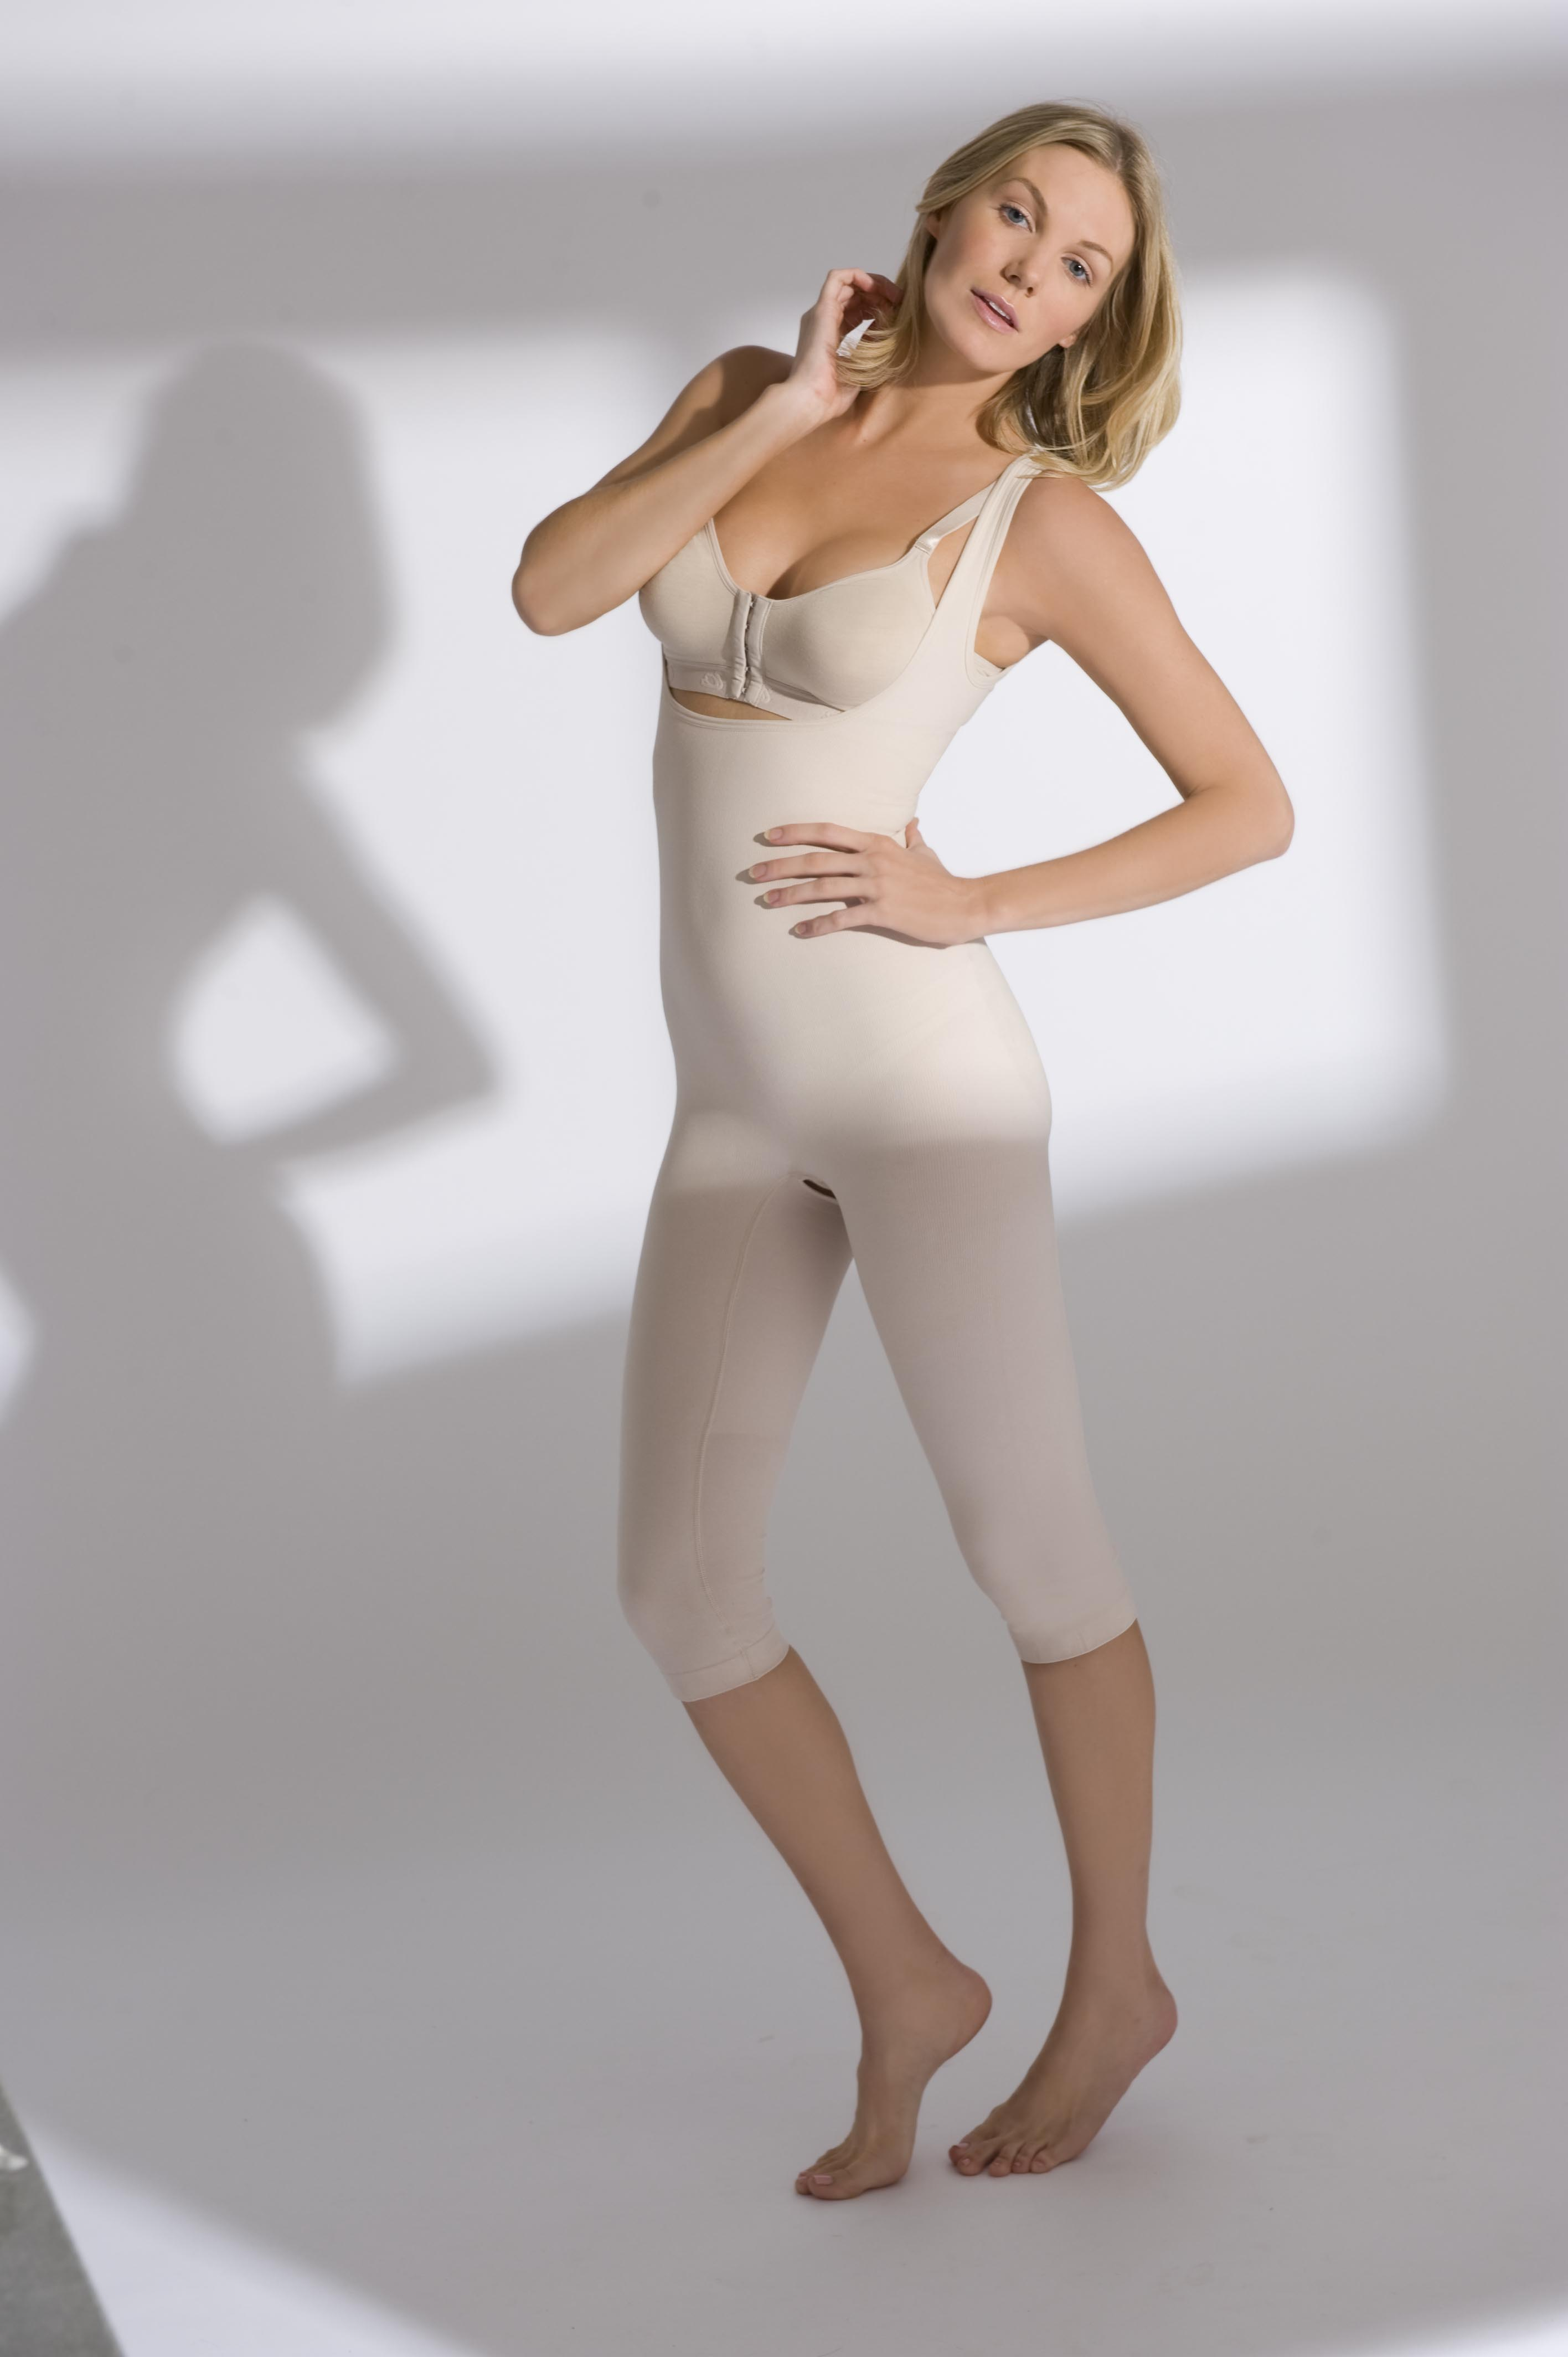 Annette Renolife Full Body Below Knee Compression Girdle